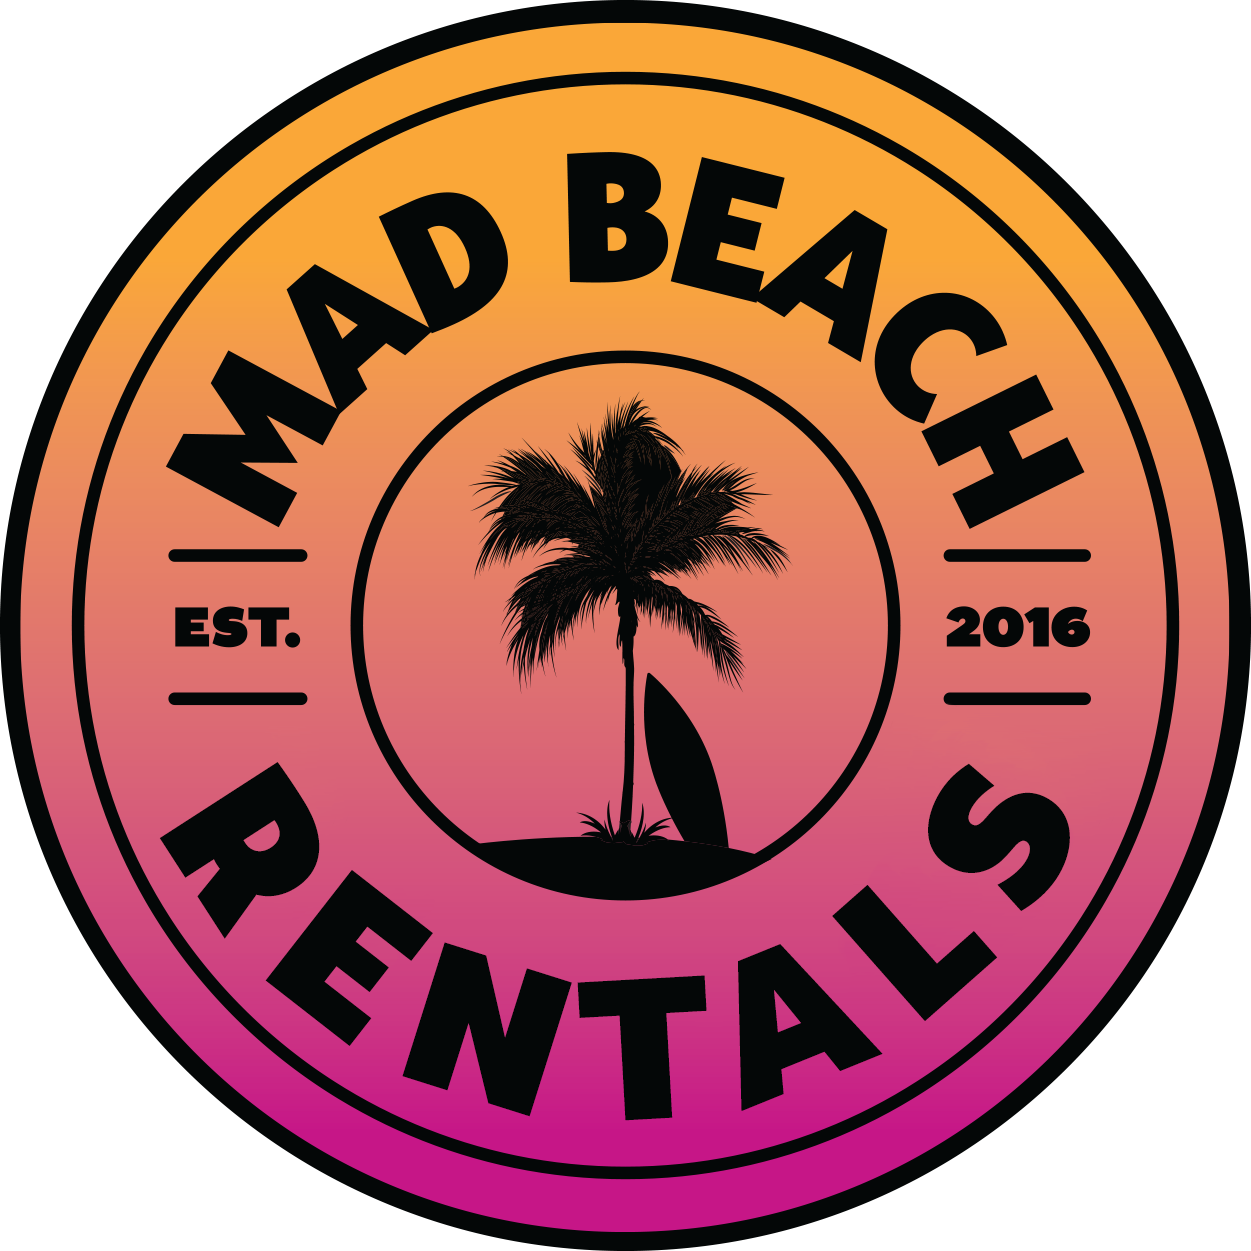 MAD_BEACH_RENTALS_WEB.png